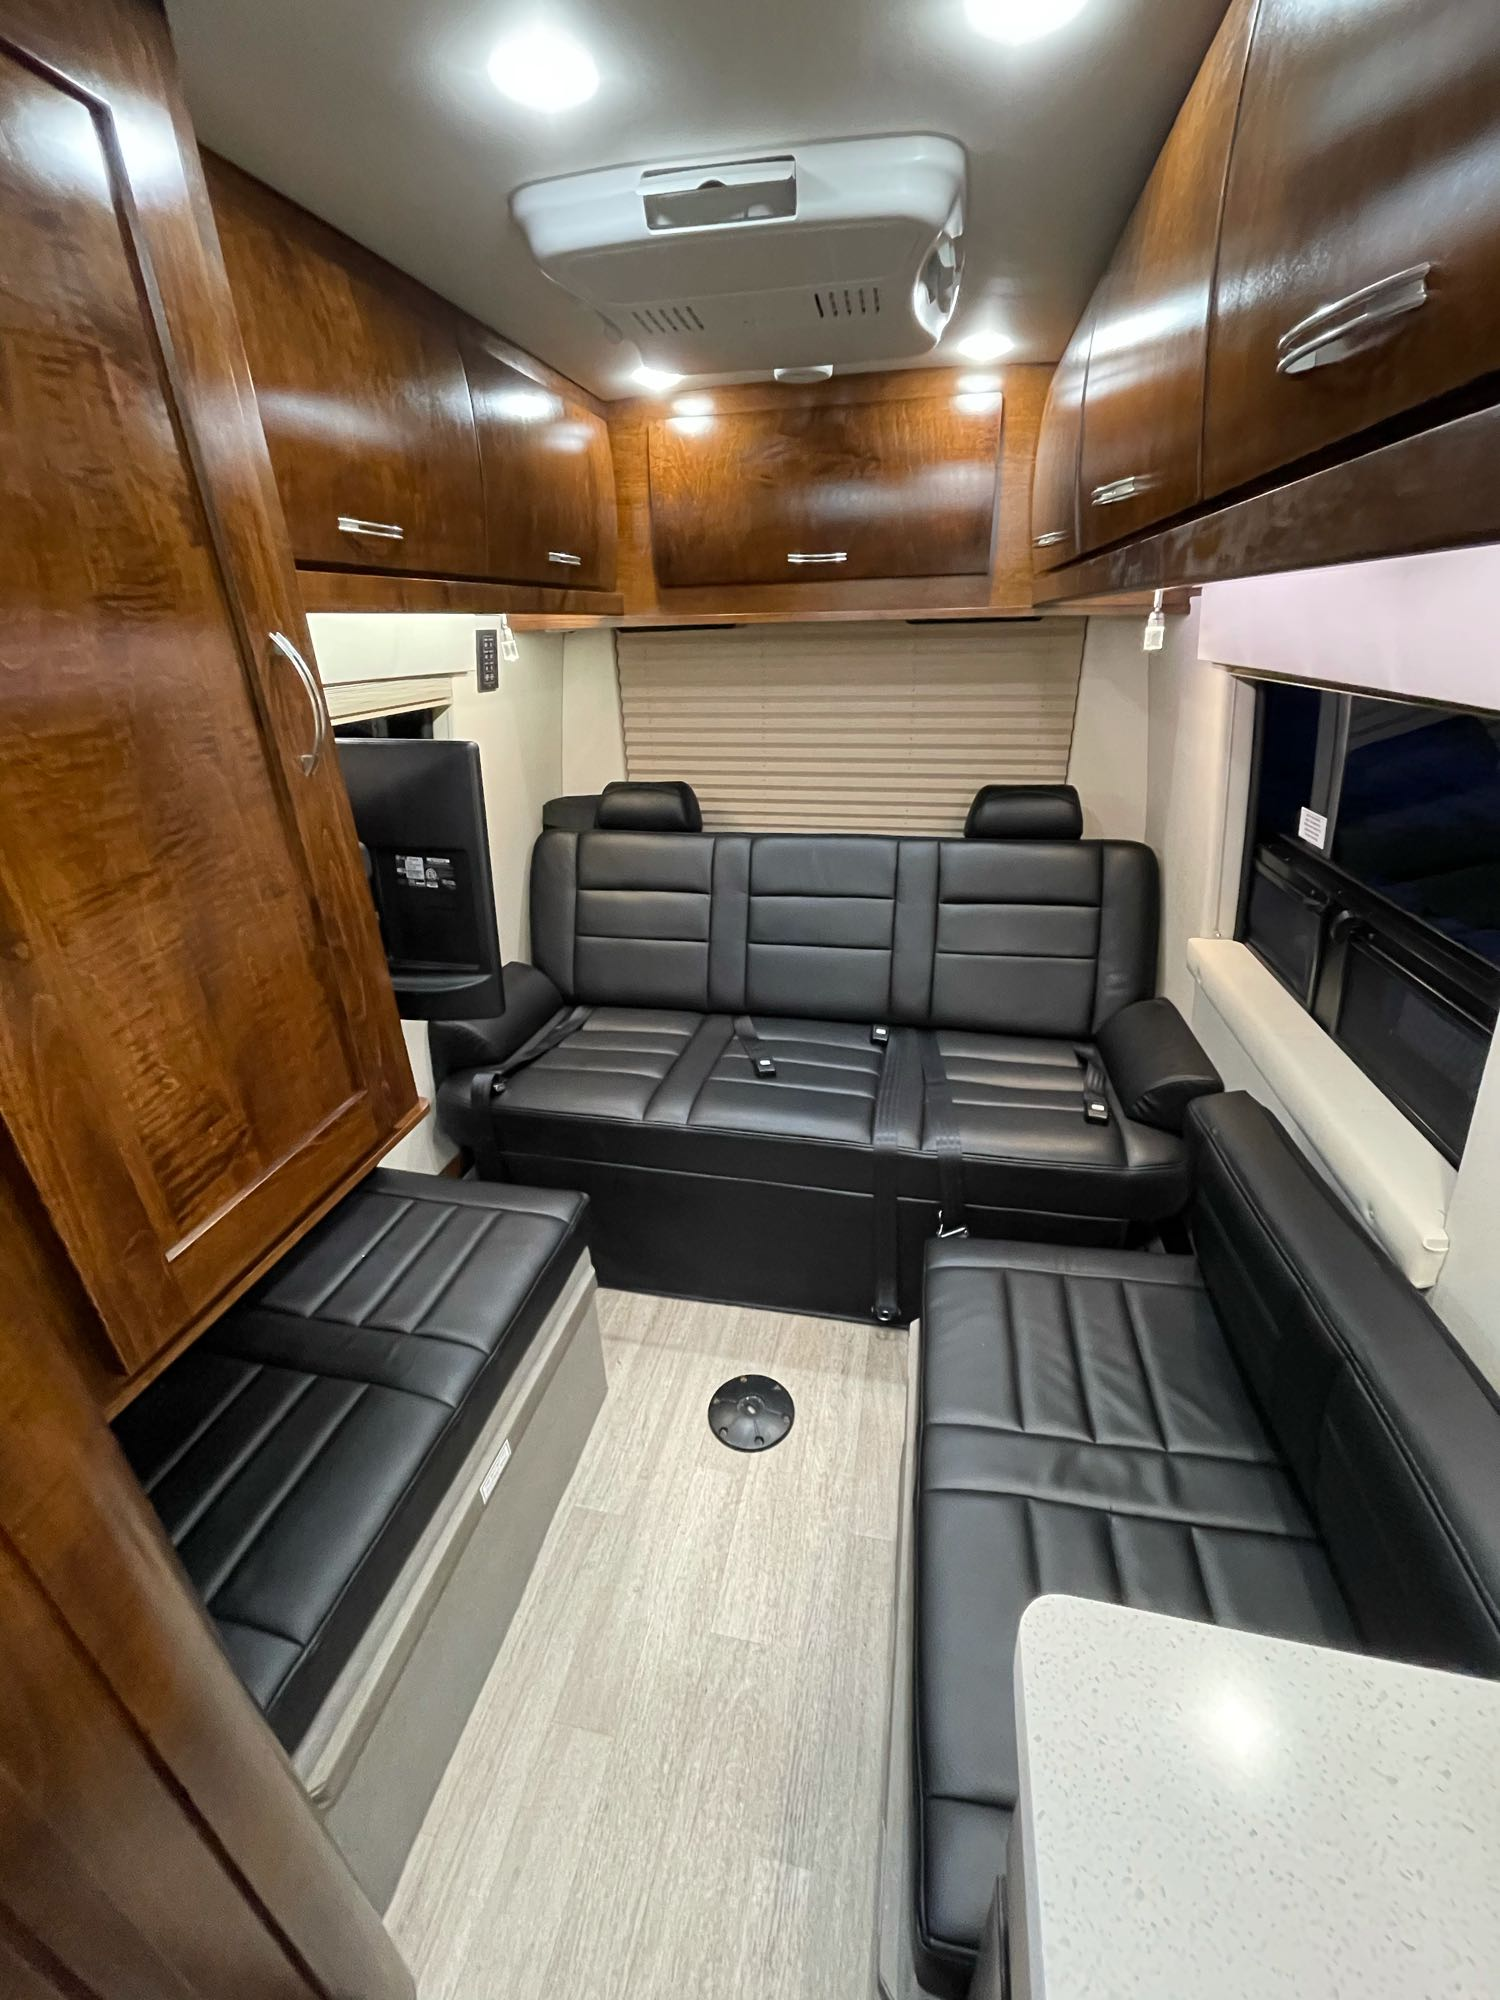 Rear bench seat and side jump seat.. Coachmen Galleria 24Q 2018